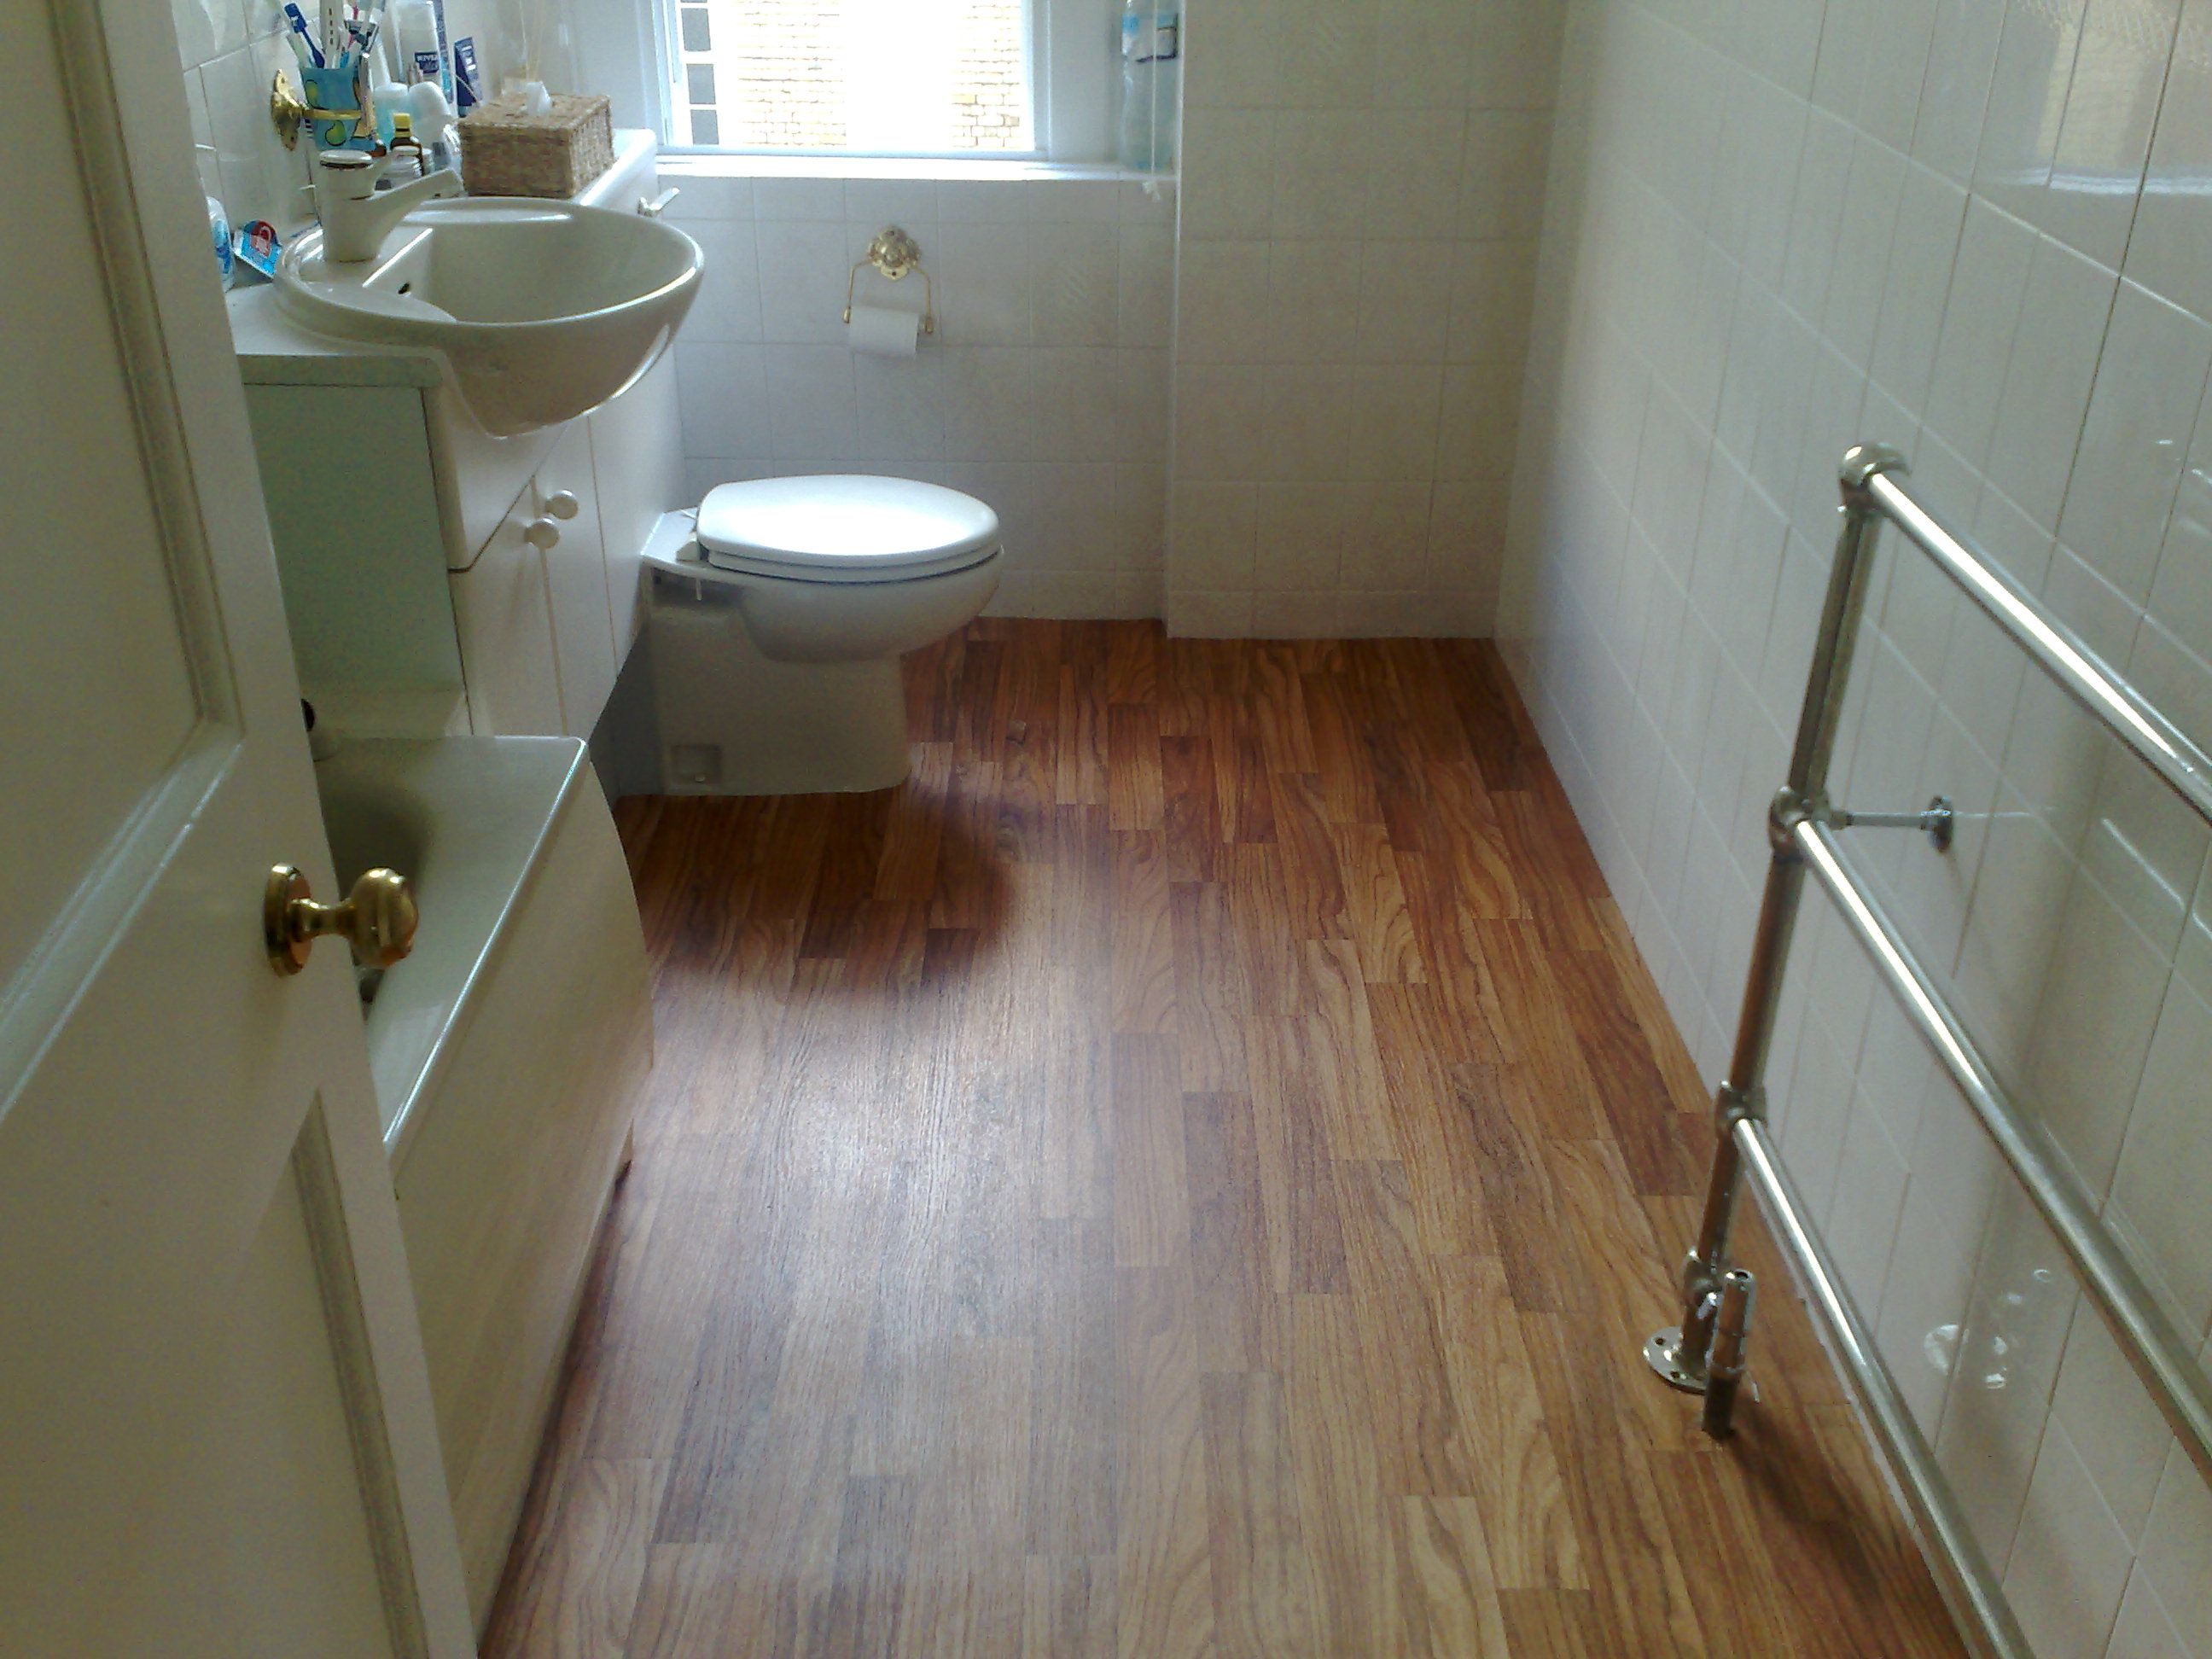 30 Great Ideas And Pictures Of Self Adhesive Vinyl Floor Tiles For Bathroom Wood Tile Bathroom